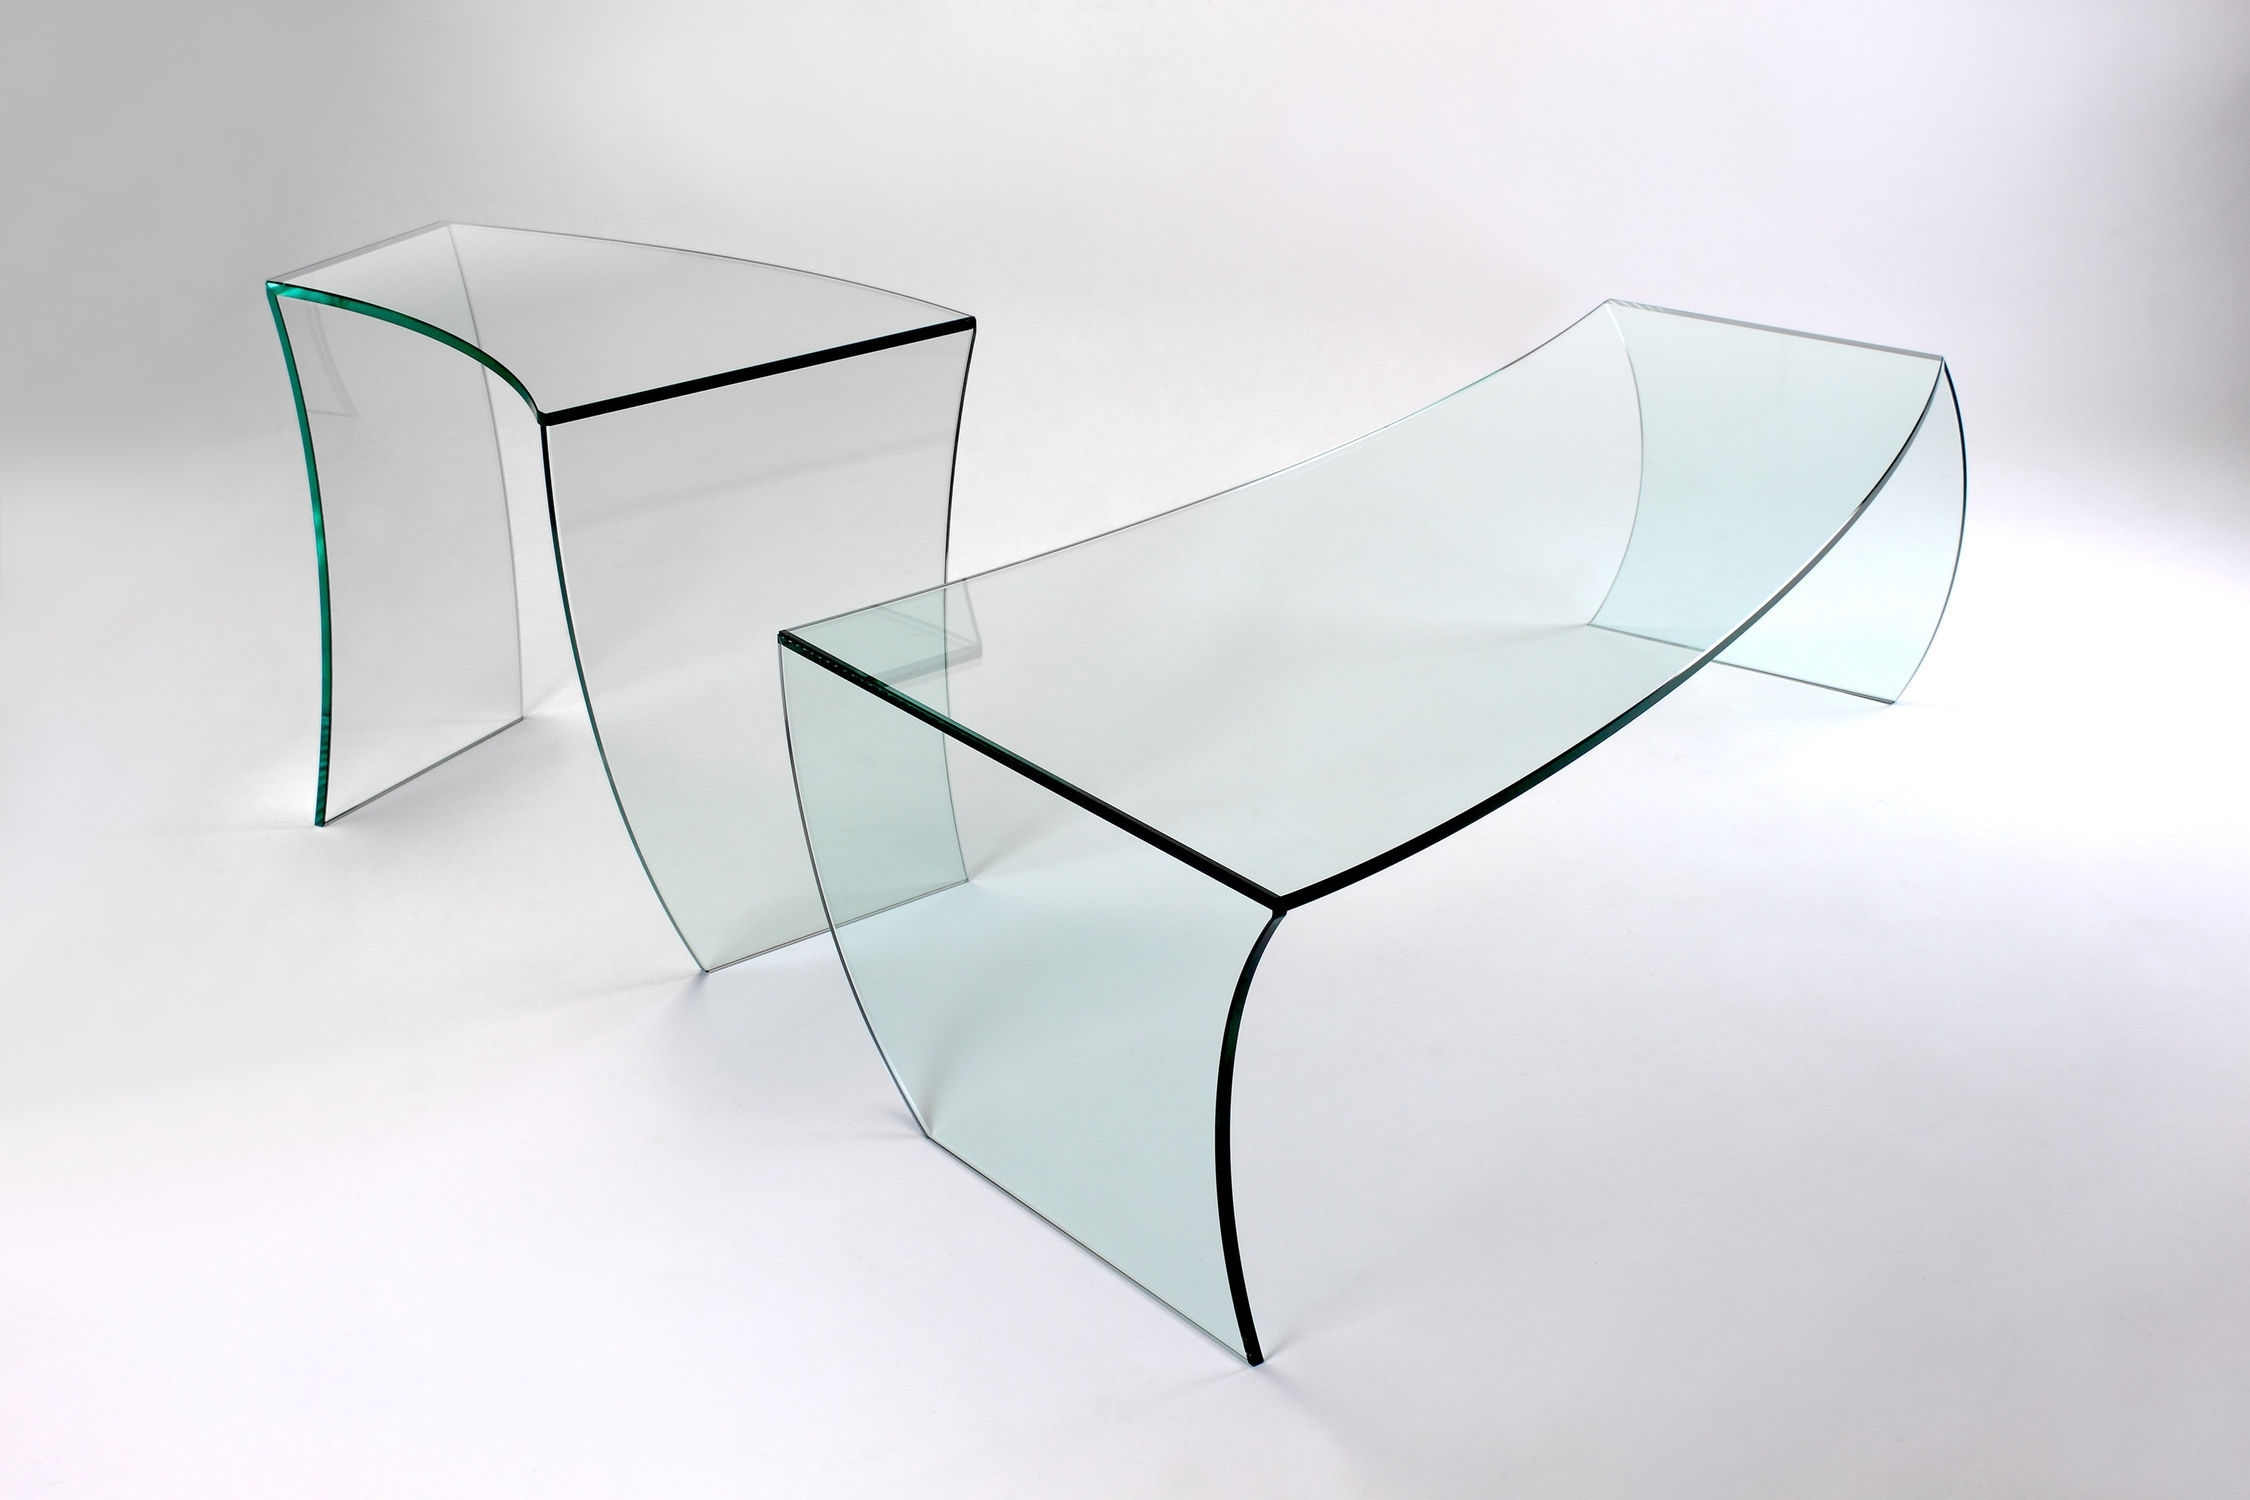 Contemporary Coffee Table / Glass / Curved - Bent Straights intended for Contemporary Curves Coffee Tables (Image 7 of 30)